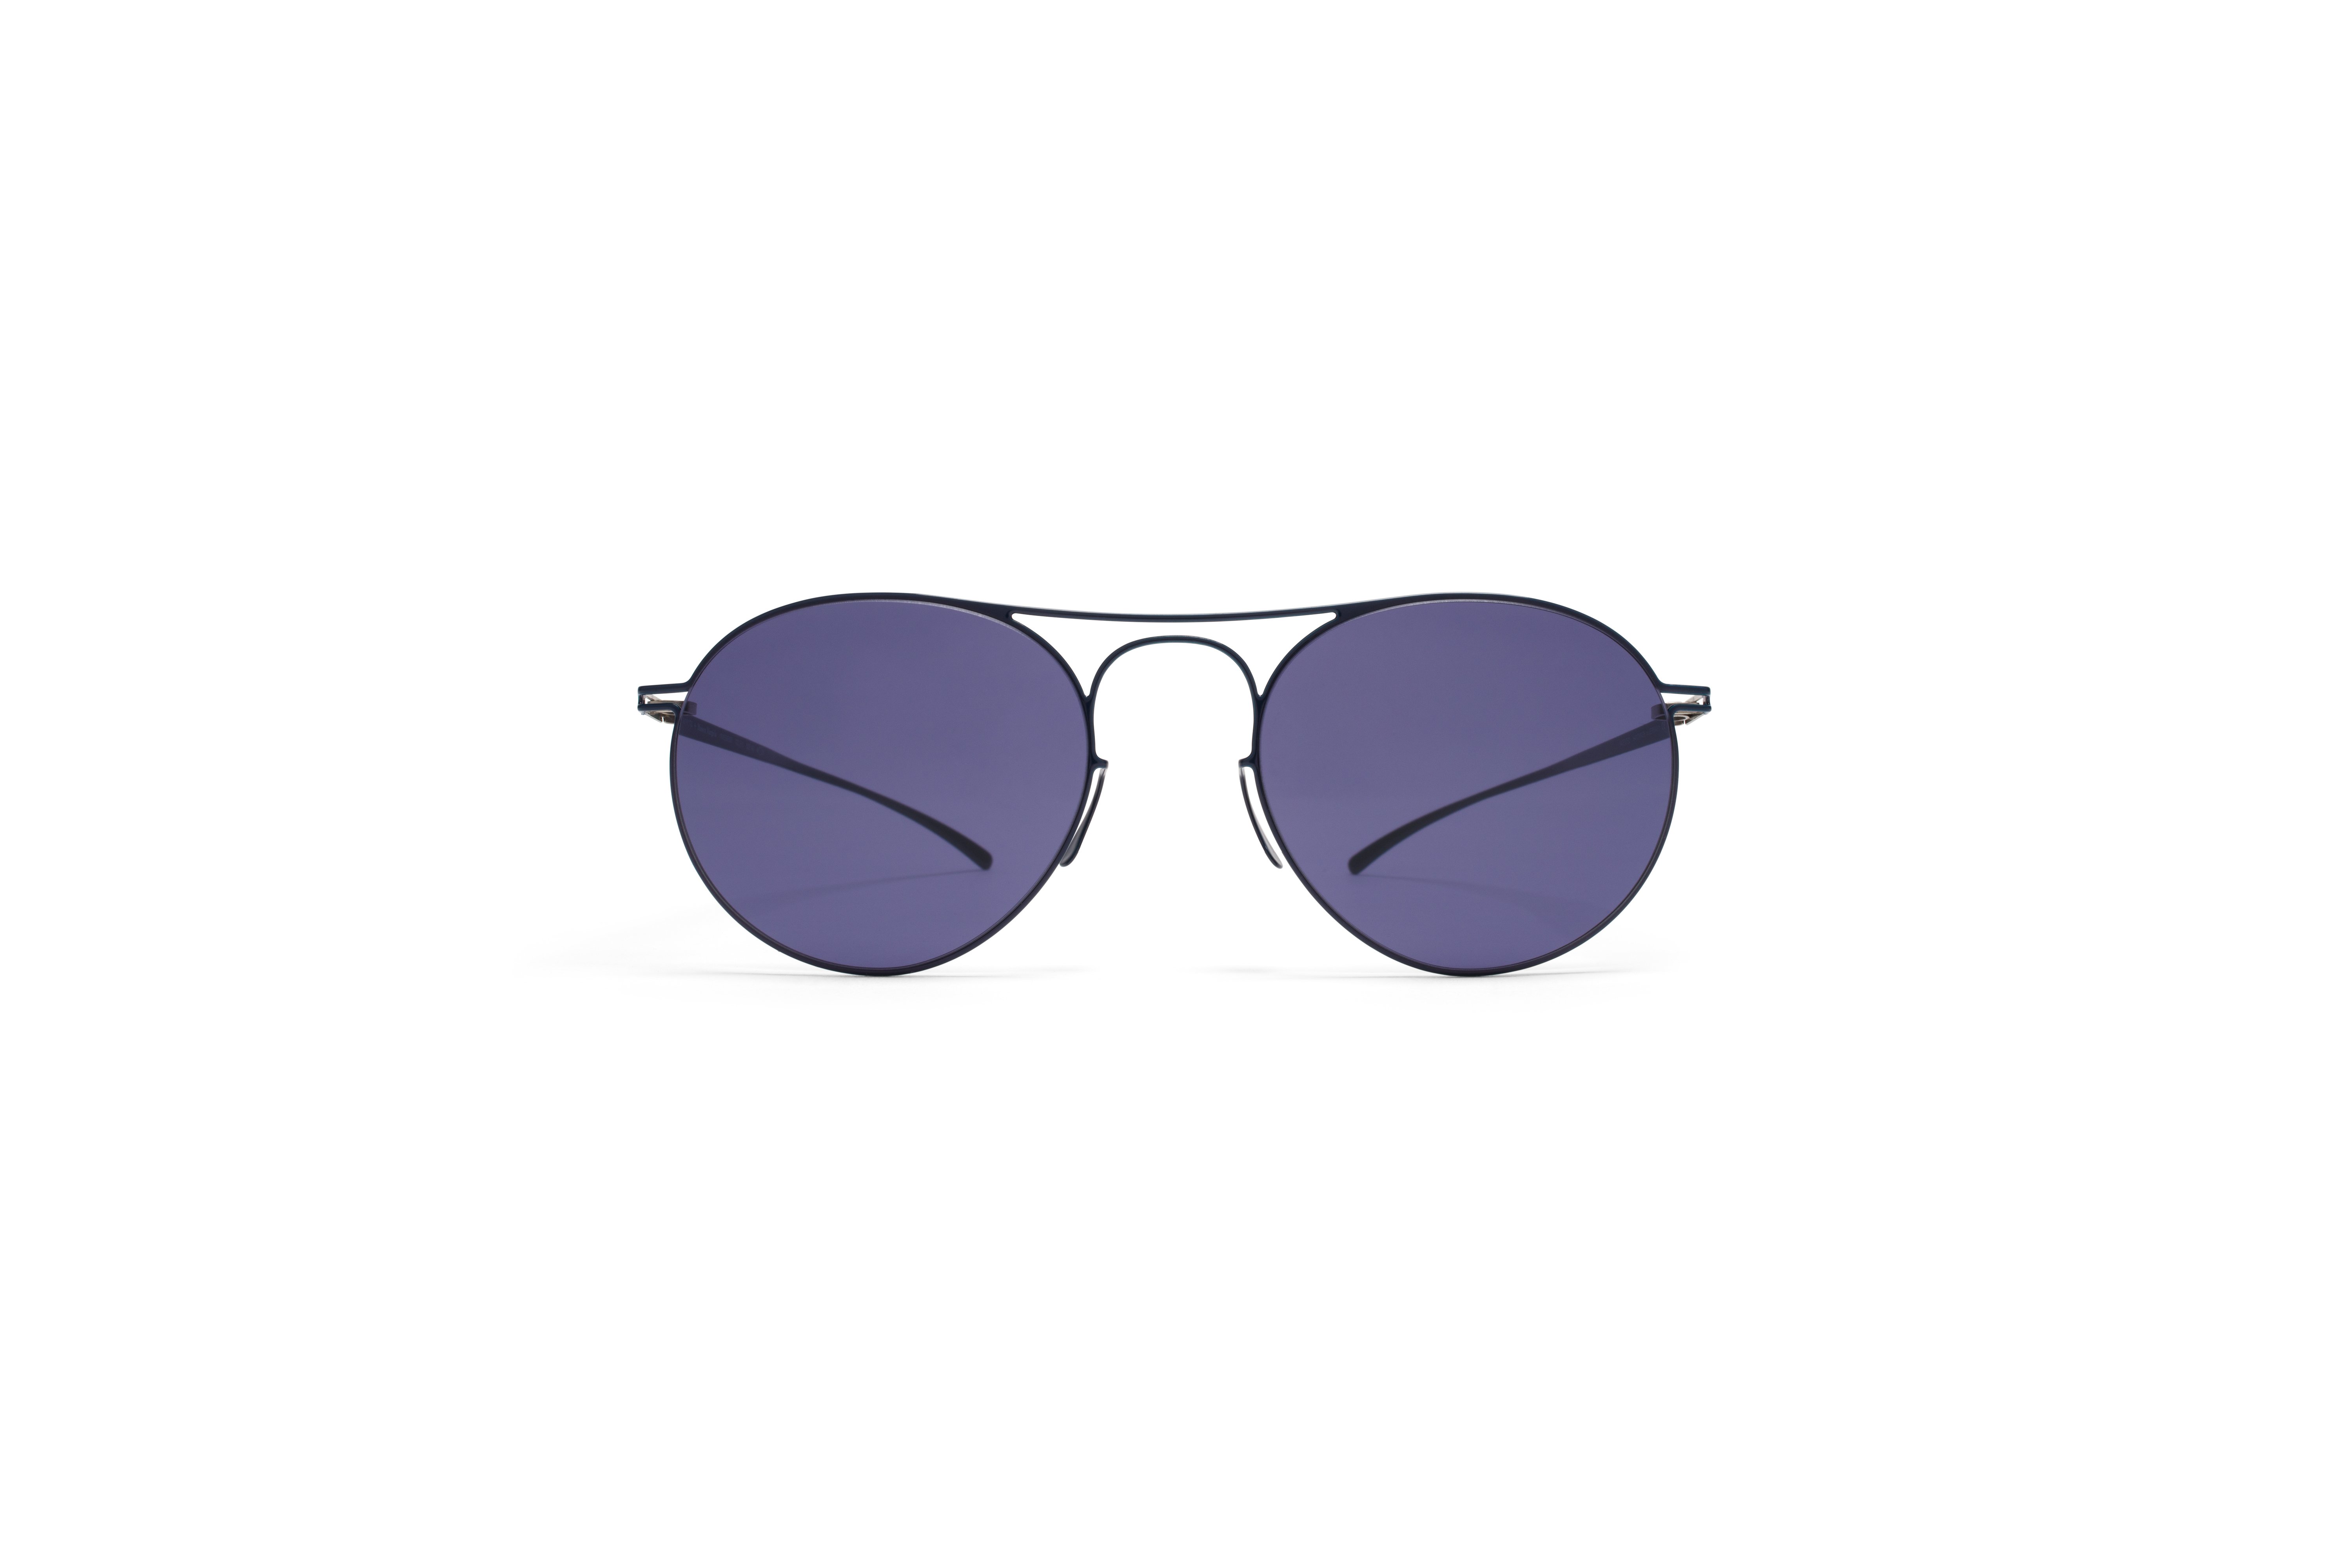 Messe sunglasses - Metallic Mykita mXCbus5O2F